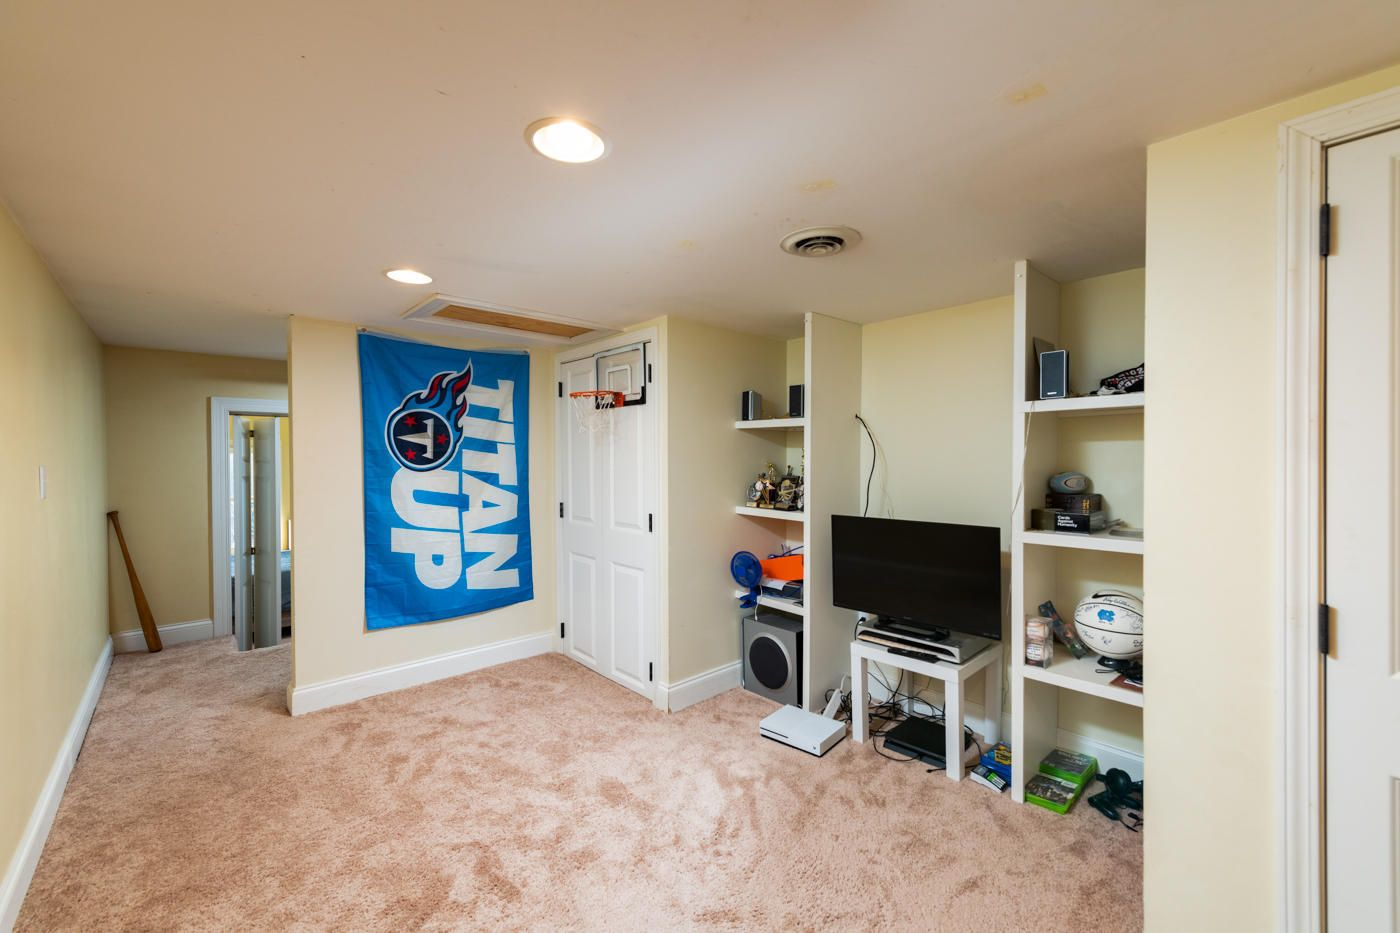 PLAYROOM/BONUS ROOM